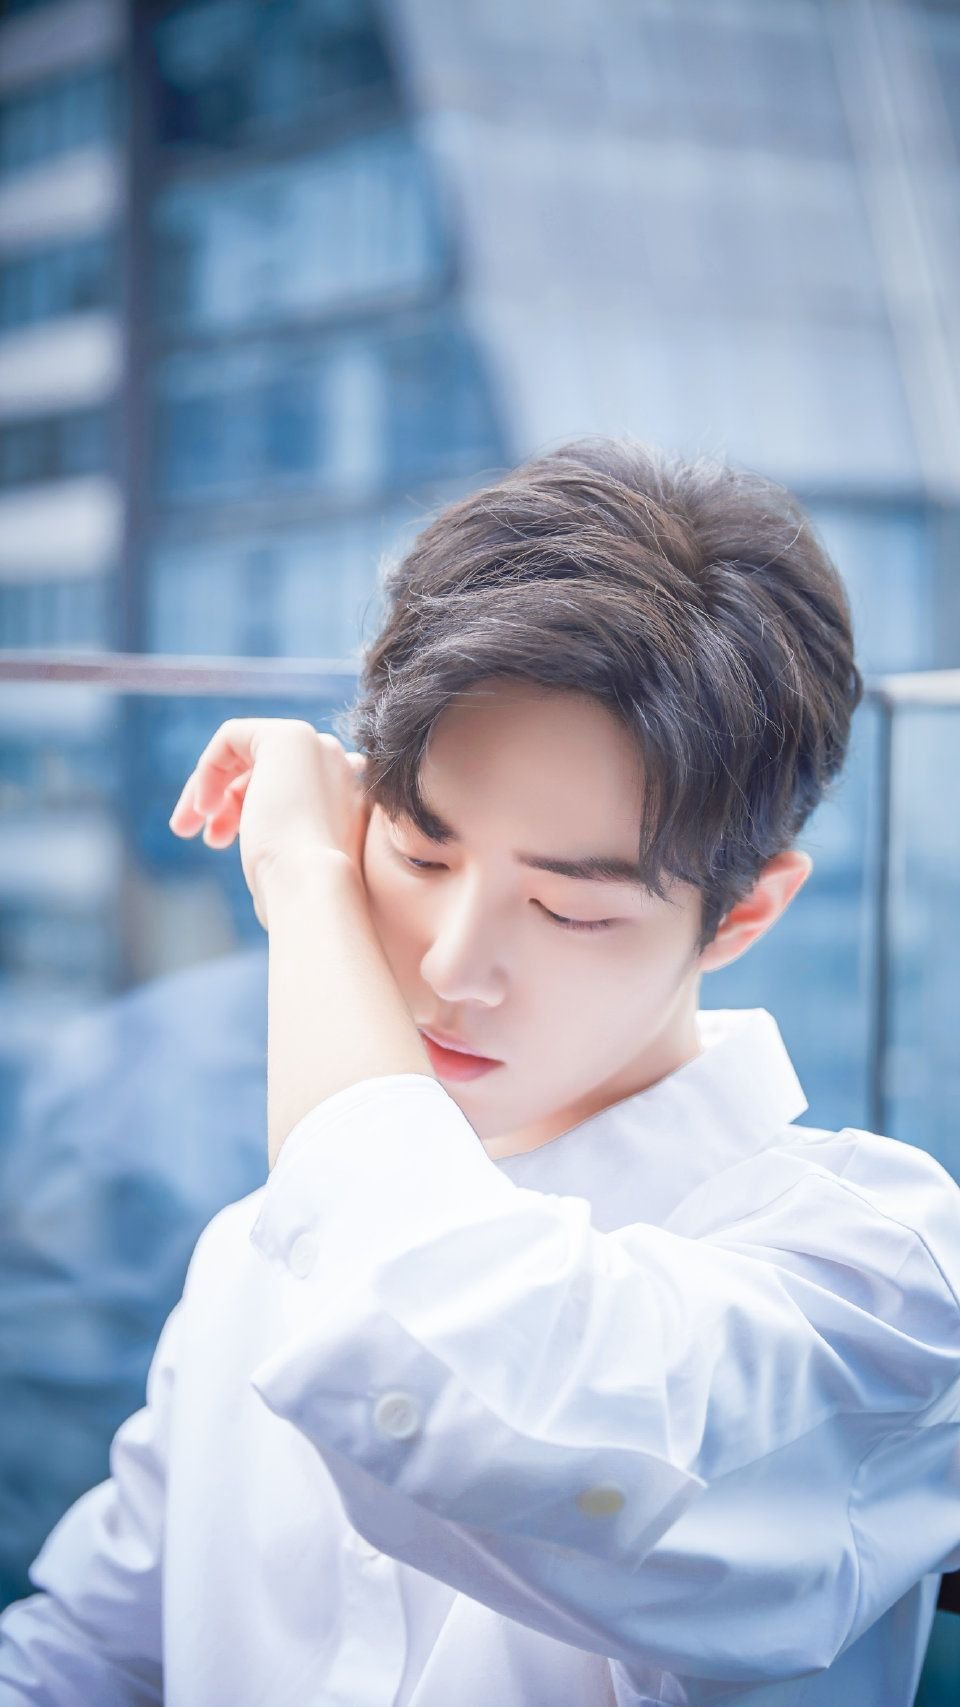 [ONHOLD] THE DISAPPOINTMENT HEART 一 Xiao, Orang, Wattpad